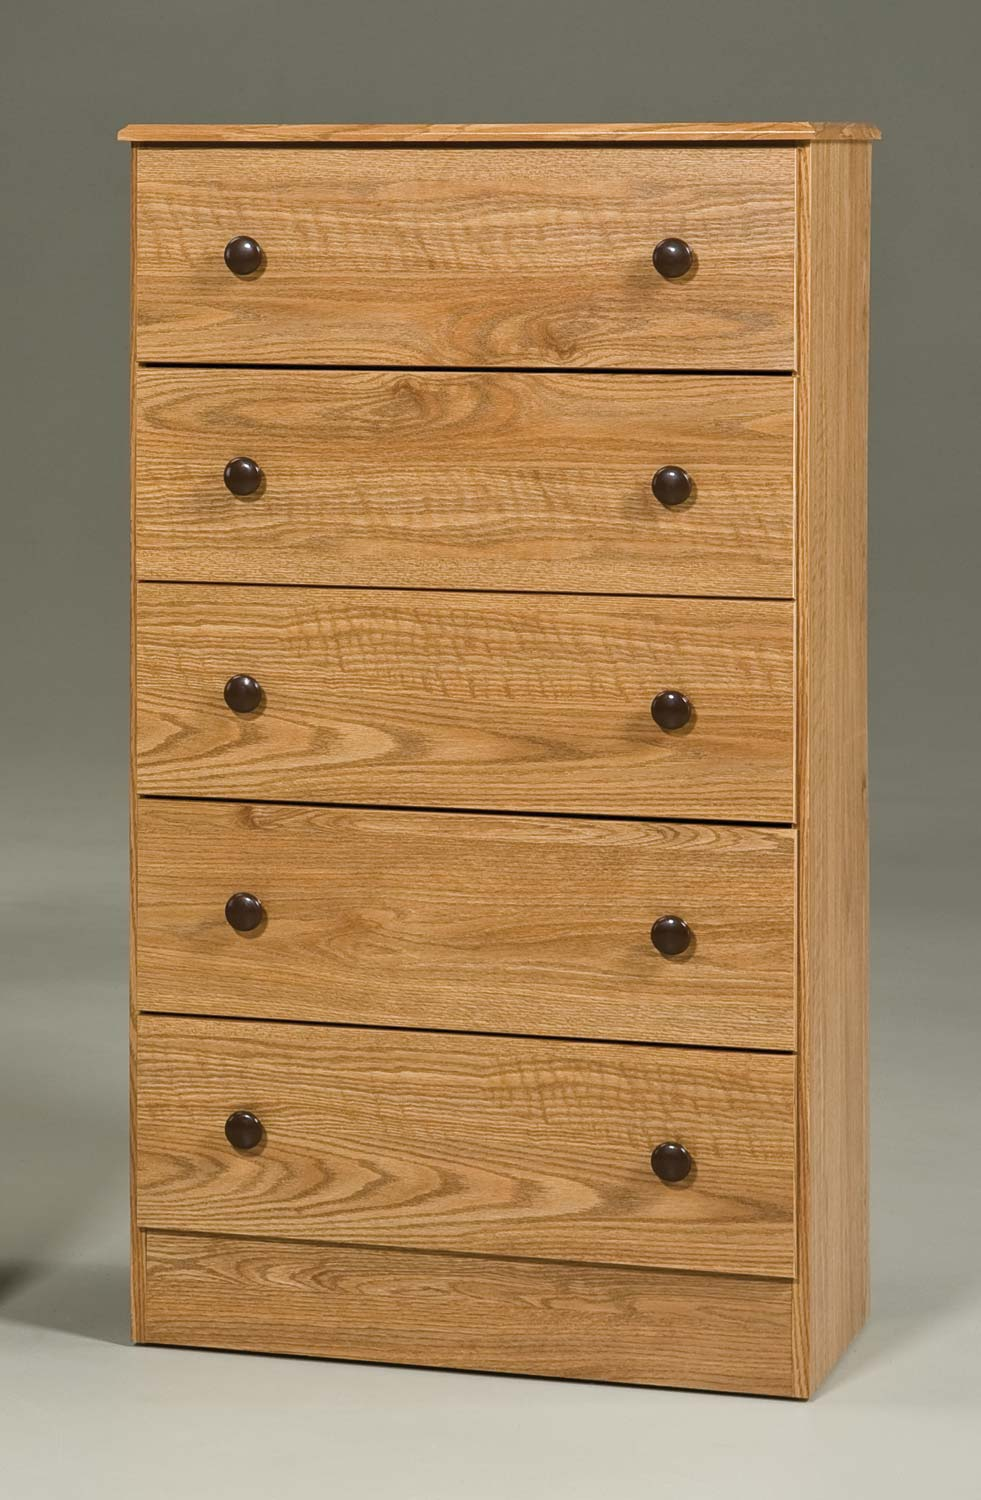 Kith Furniture Factory Select 5 Drawer Chest